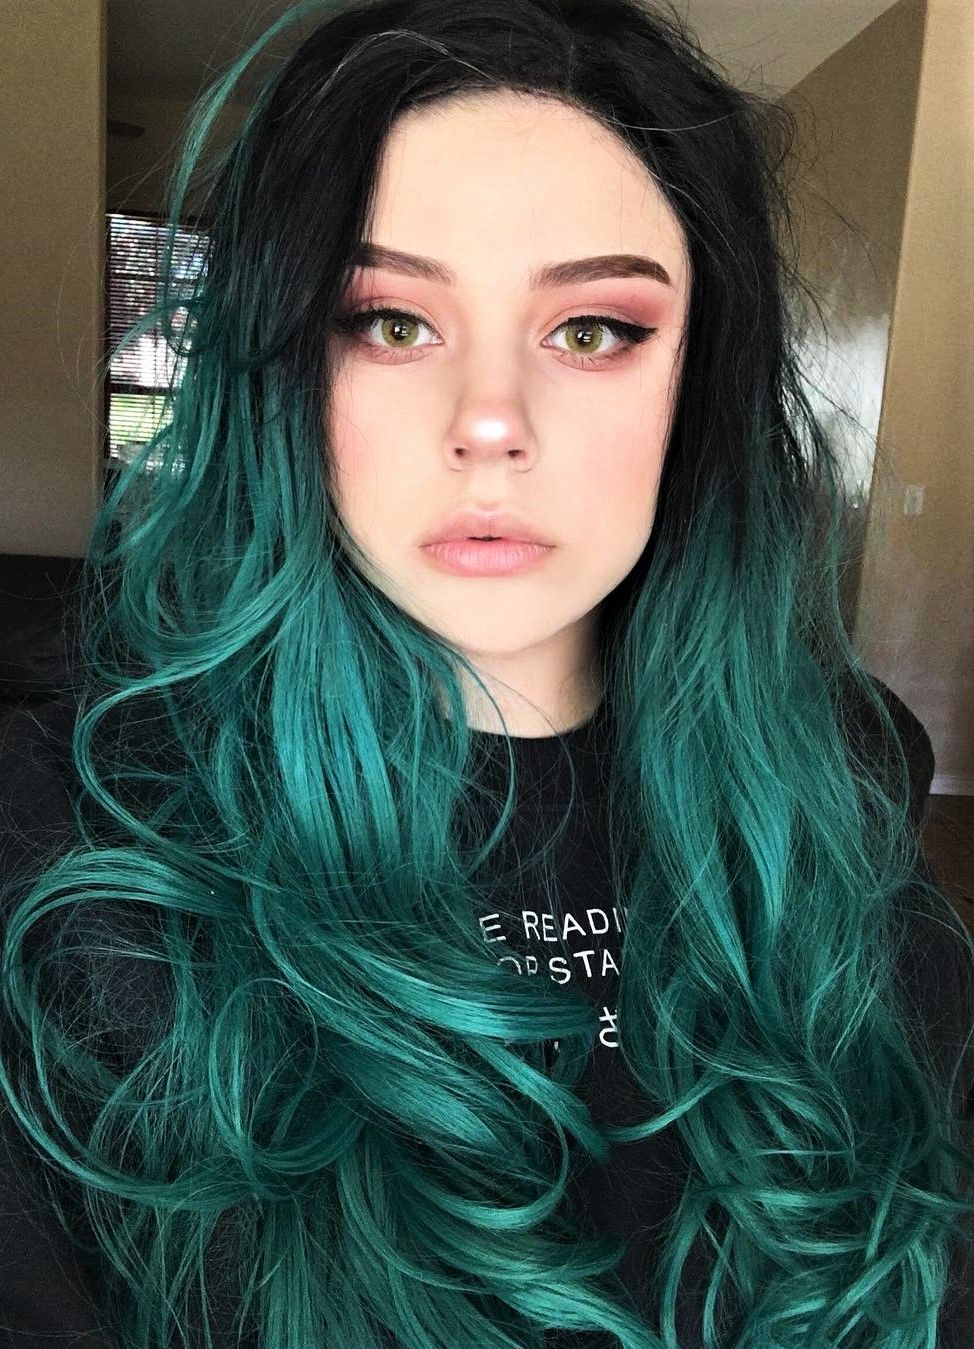 35 edgy hair color ideas to try right now edgy hair